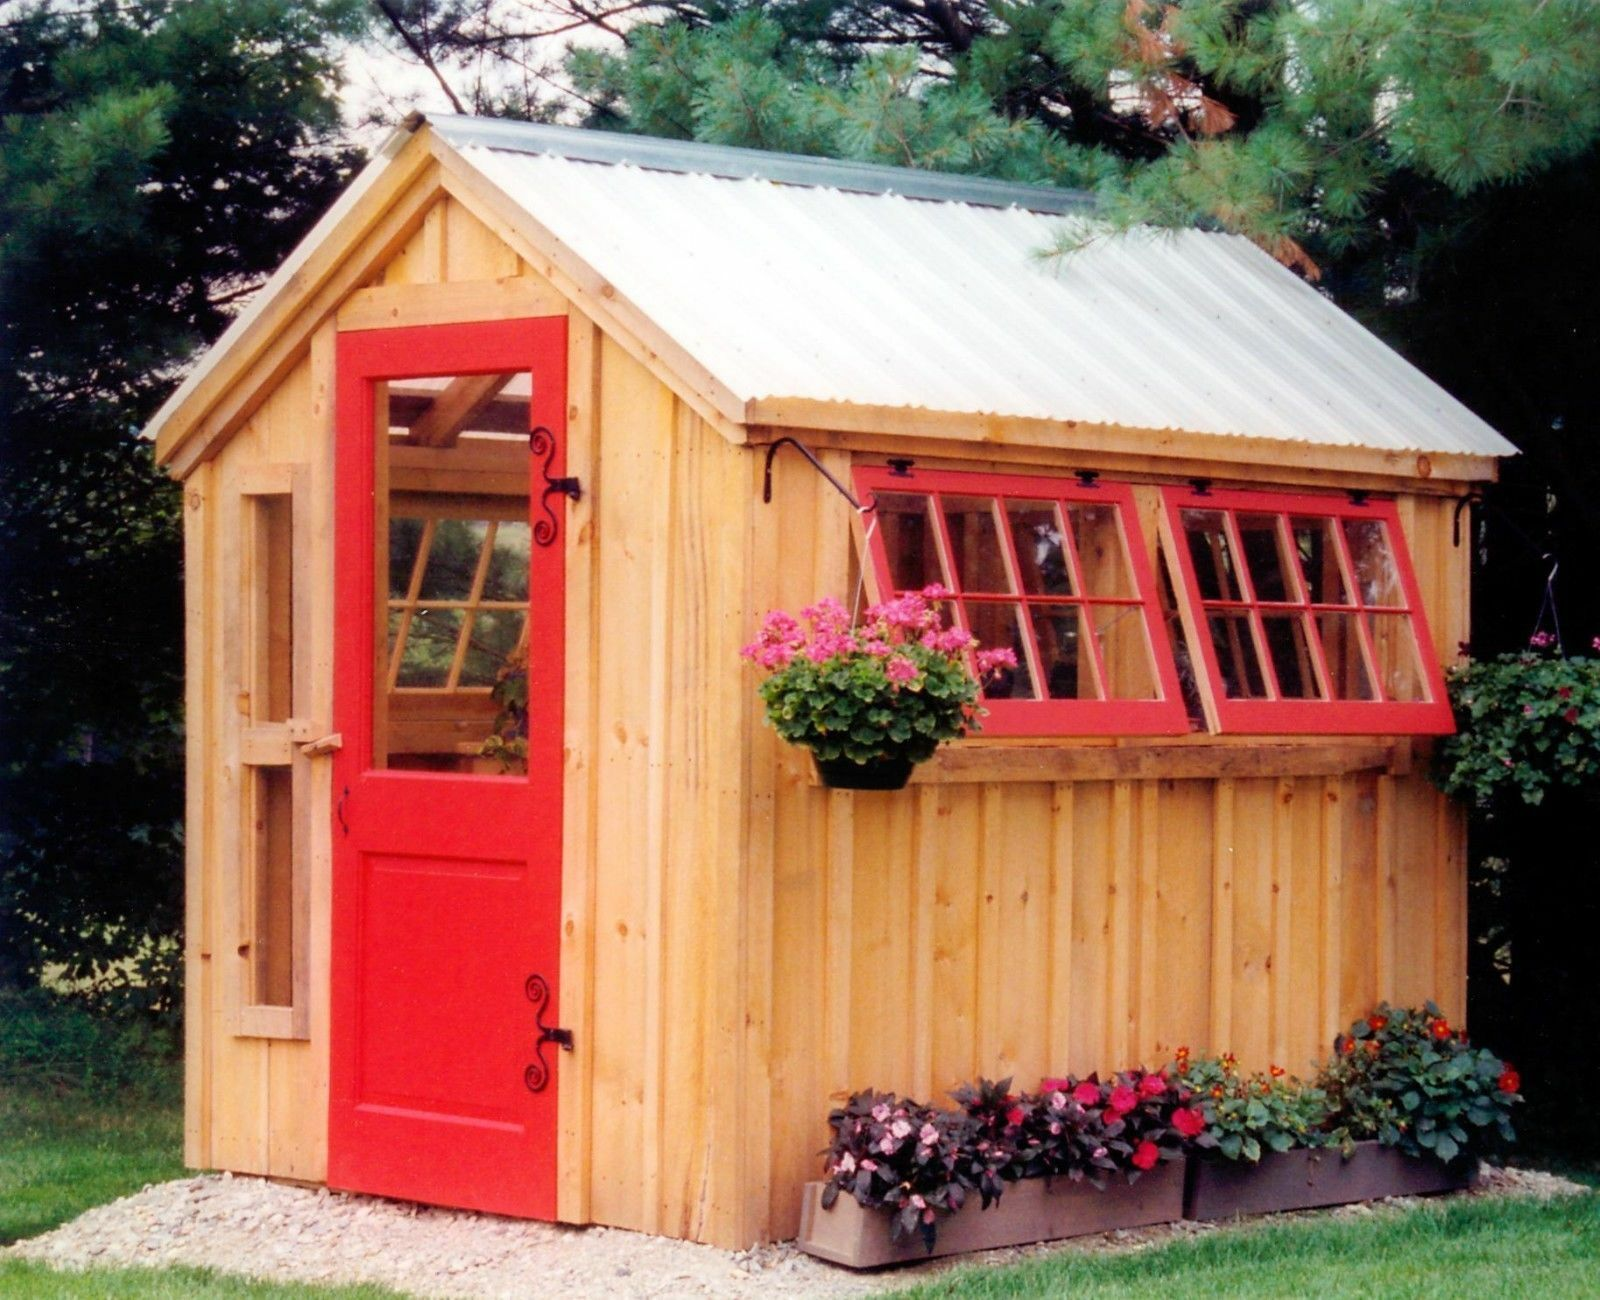 How to build a 6x8 shed ebay for Outdoor tool shed